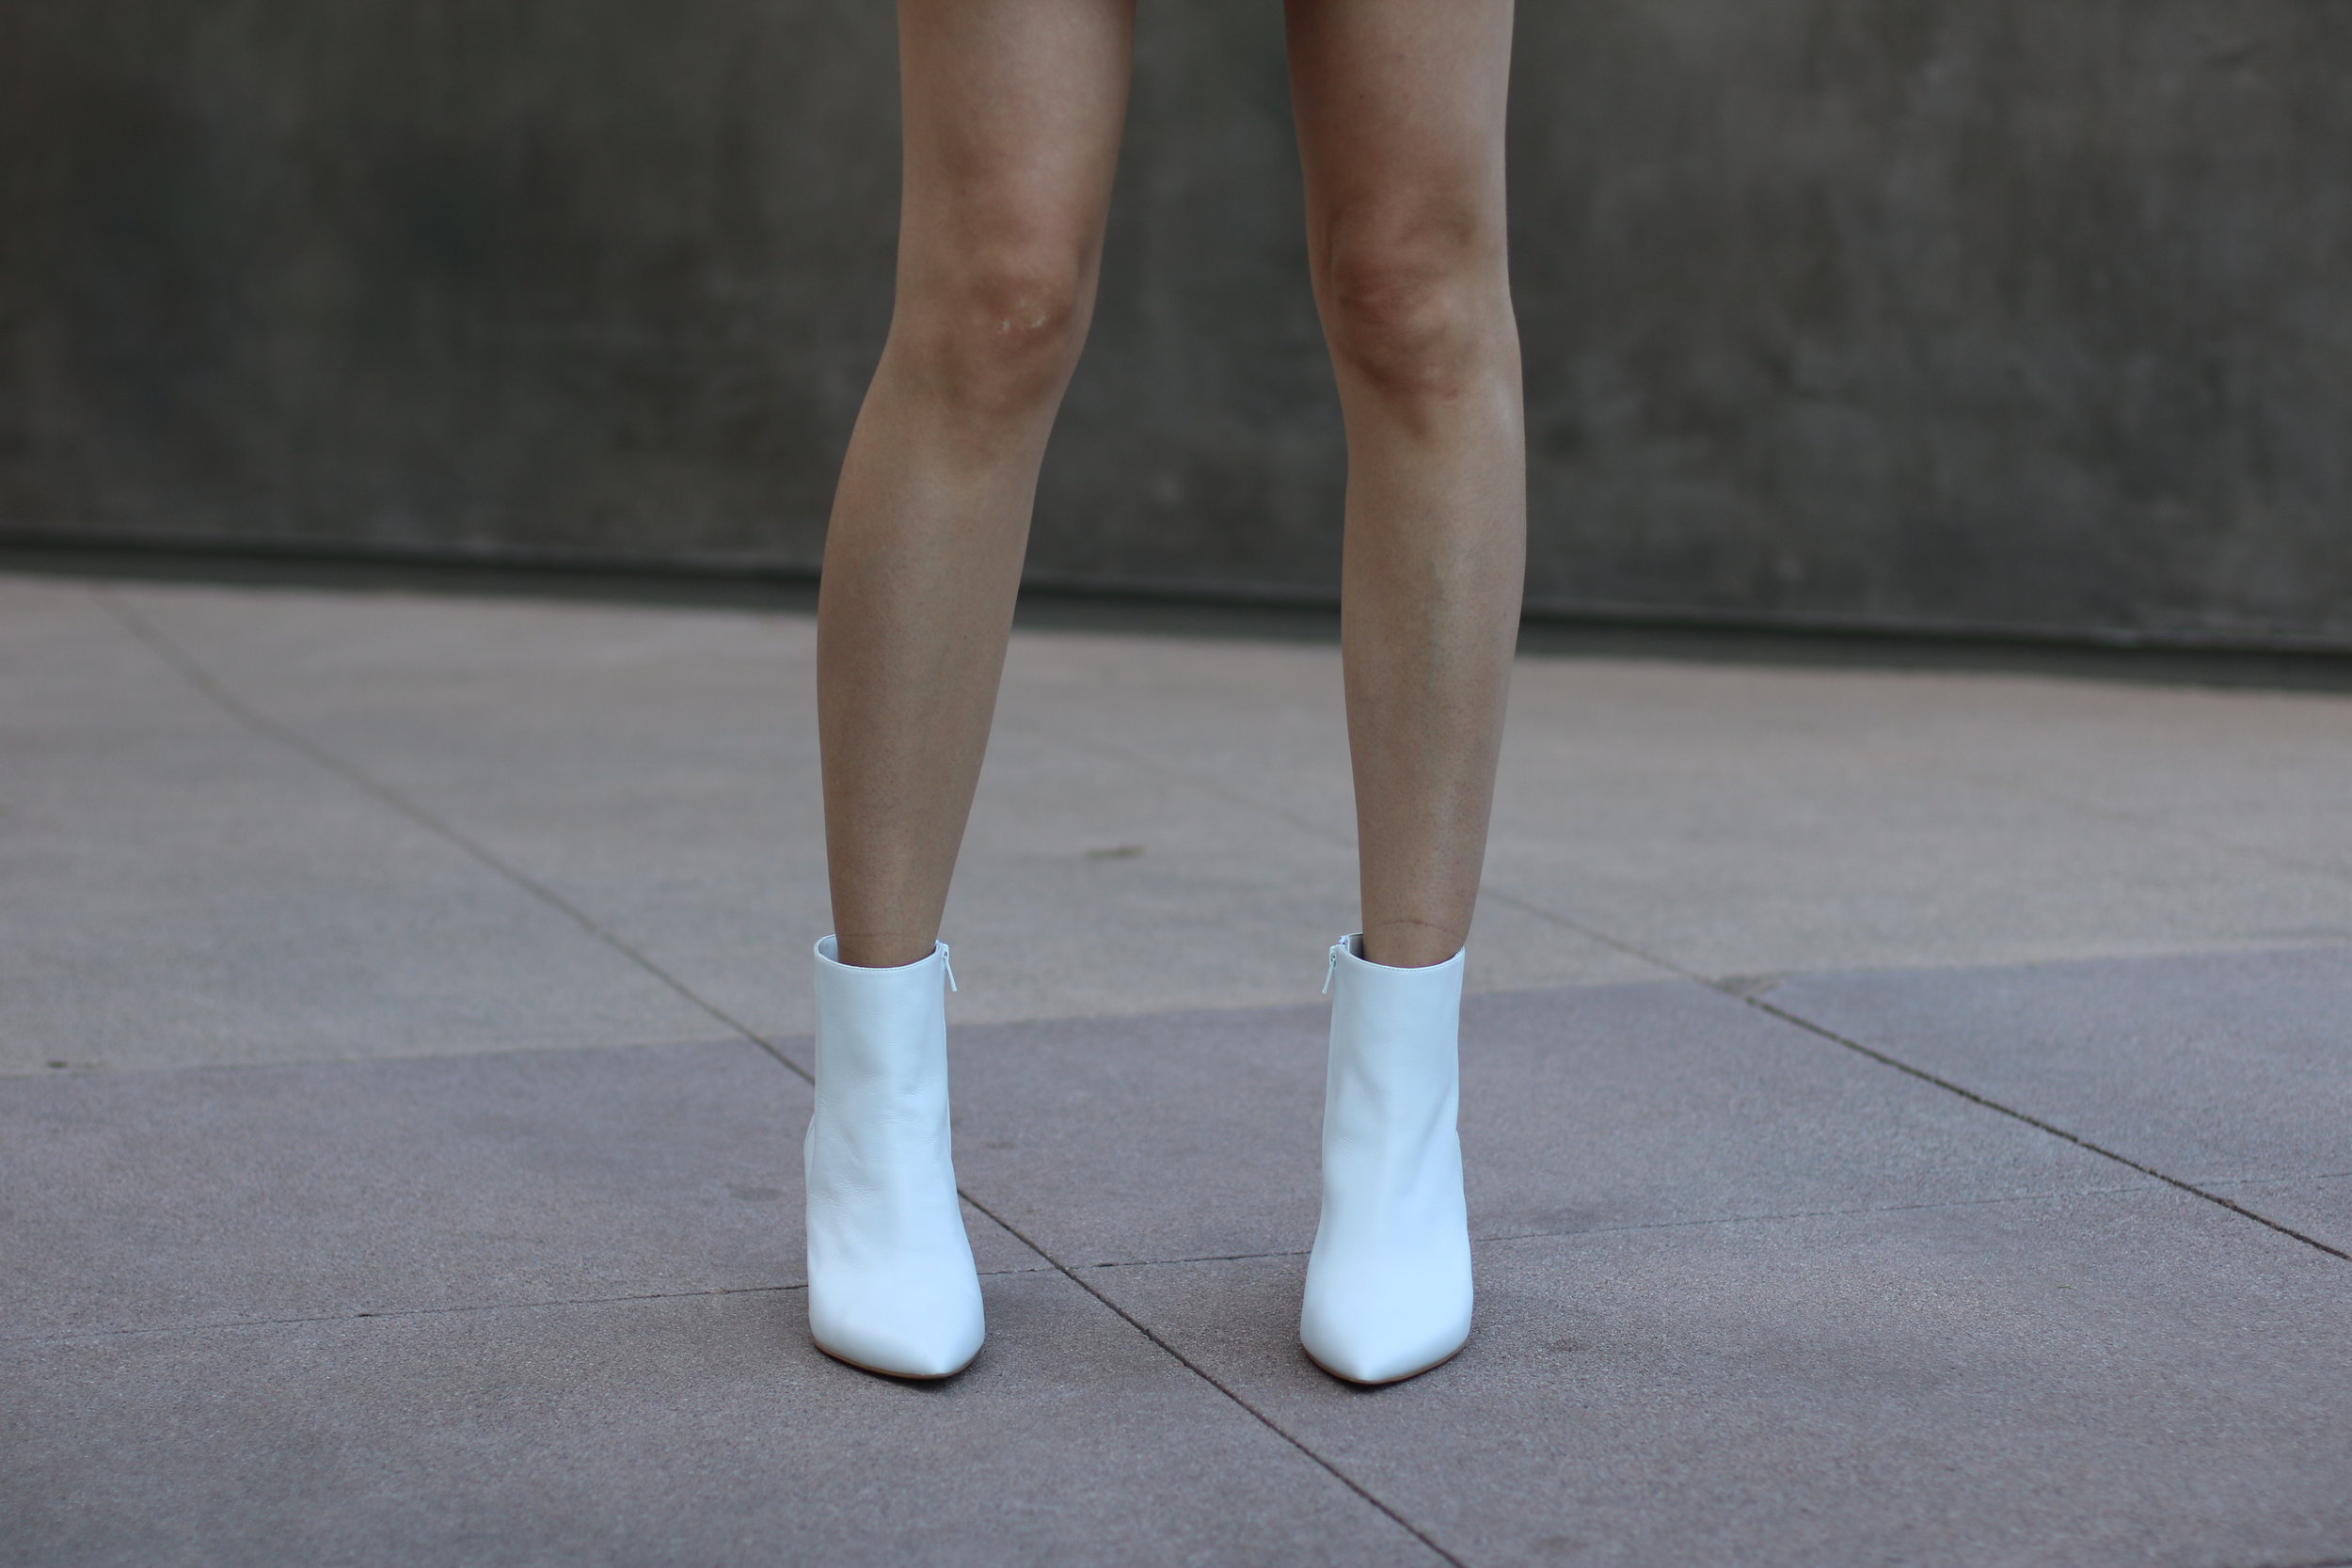 white-boot-pointed-toe-shoes-of-prey.jpg